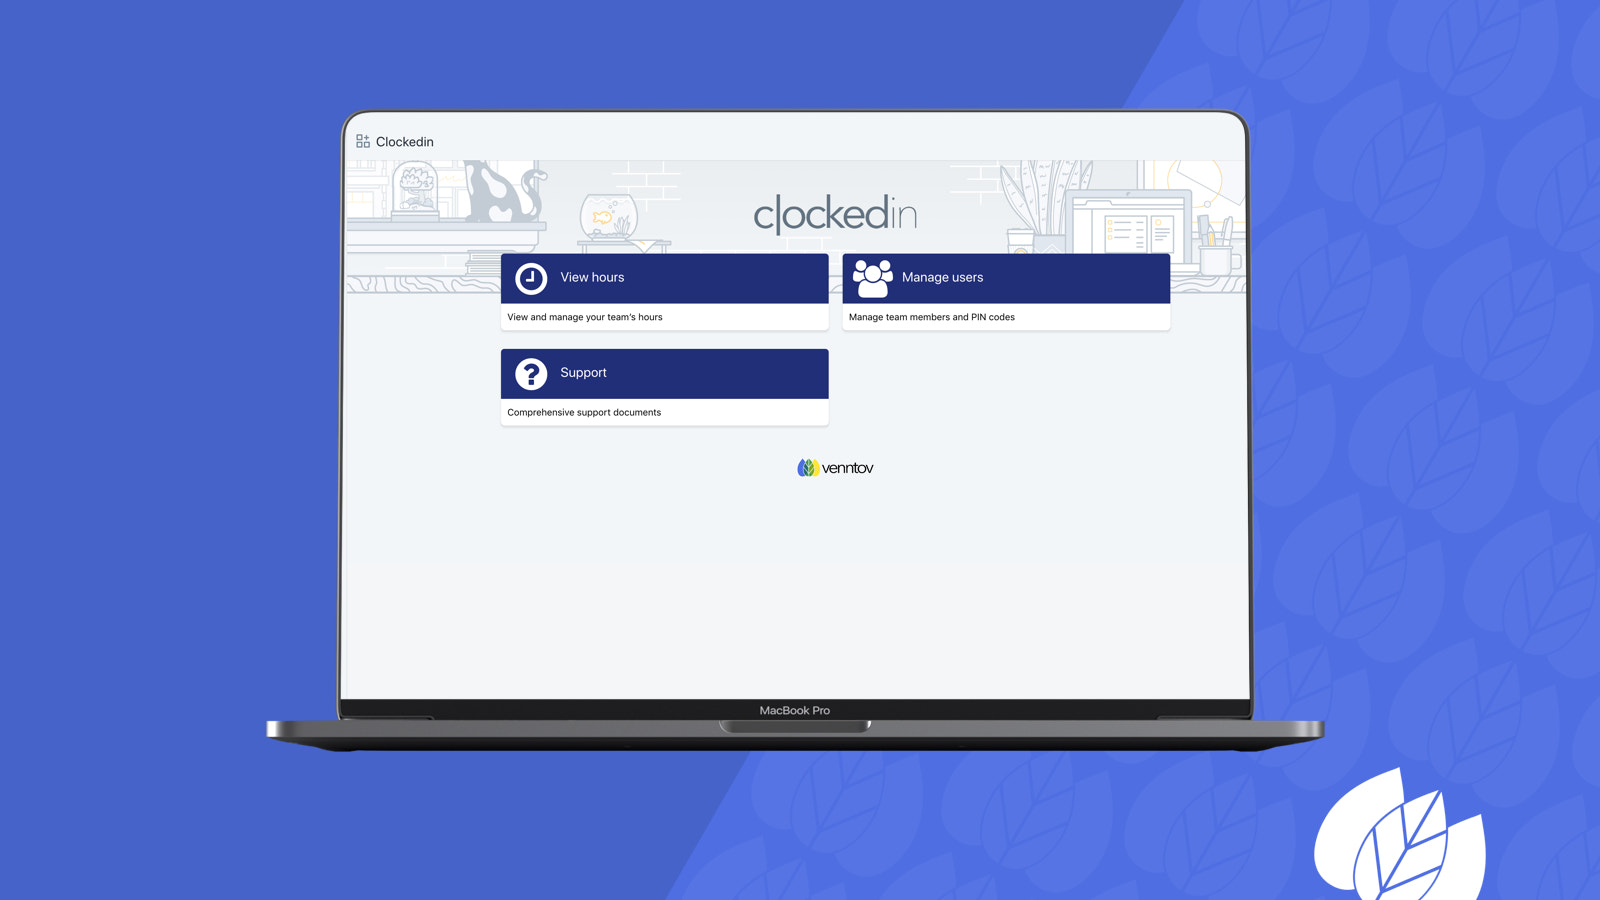 Desktop view of ClockedIn admin, there are three buttons here